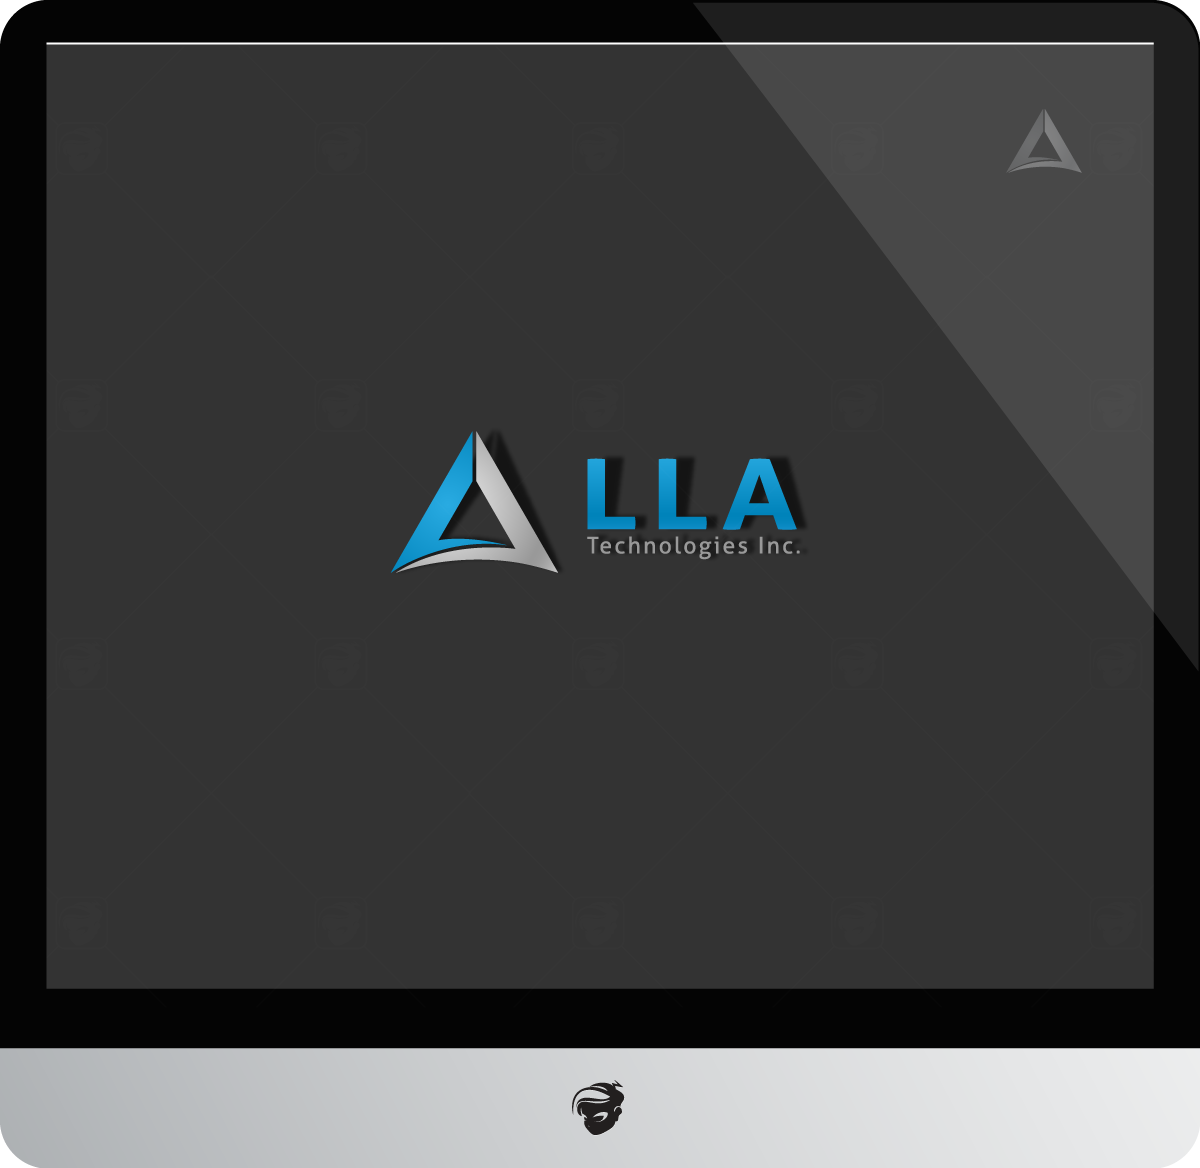 Logo Design by zesthar - Entry No. 147 in the Logo Design Contest Inspiring Logo Design for LLA Technologies Inc..